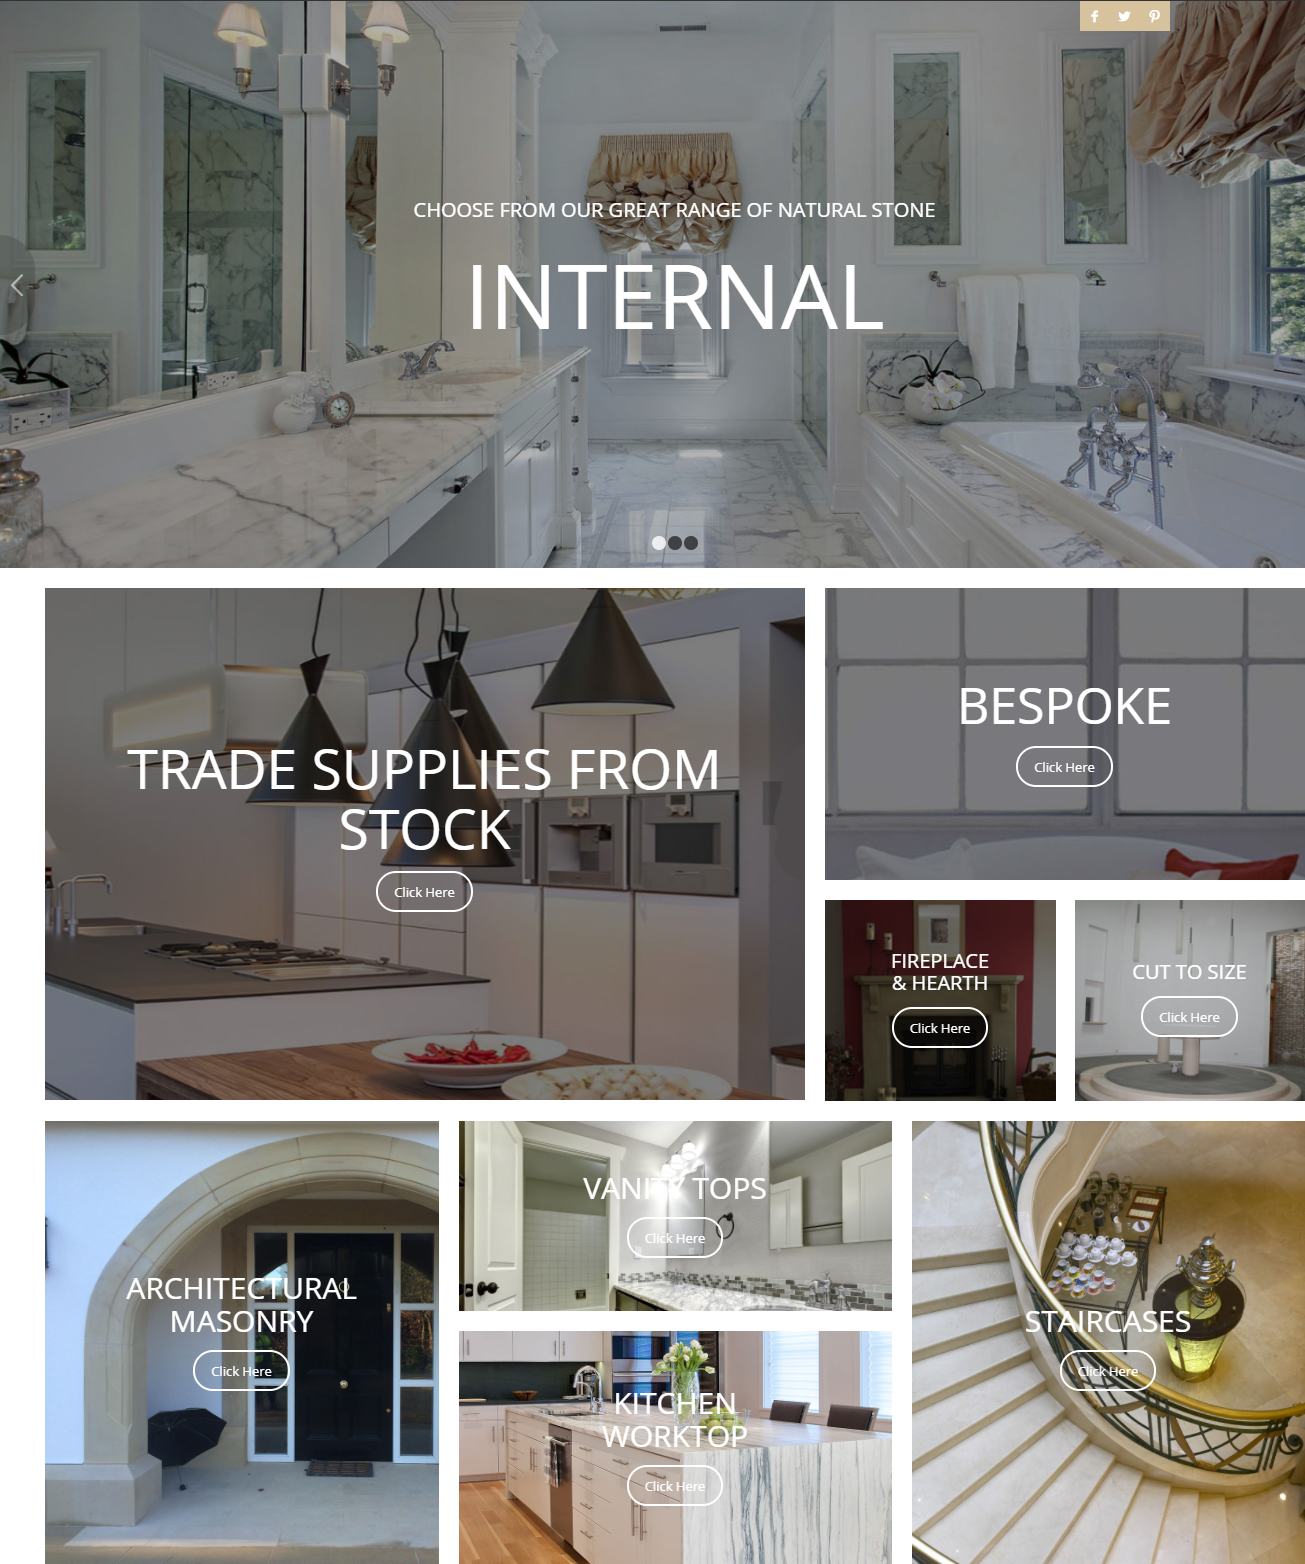 natural stone UK independent manufacturers rep sales opportunity